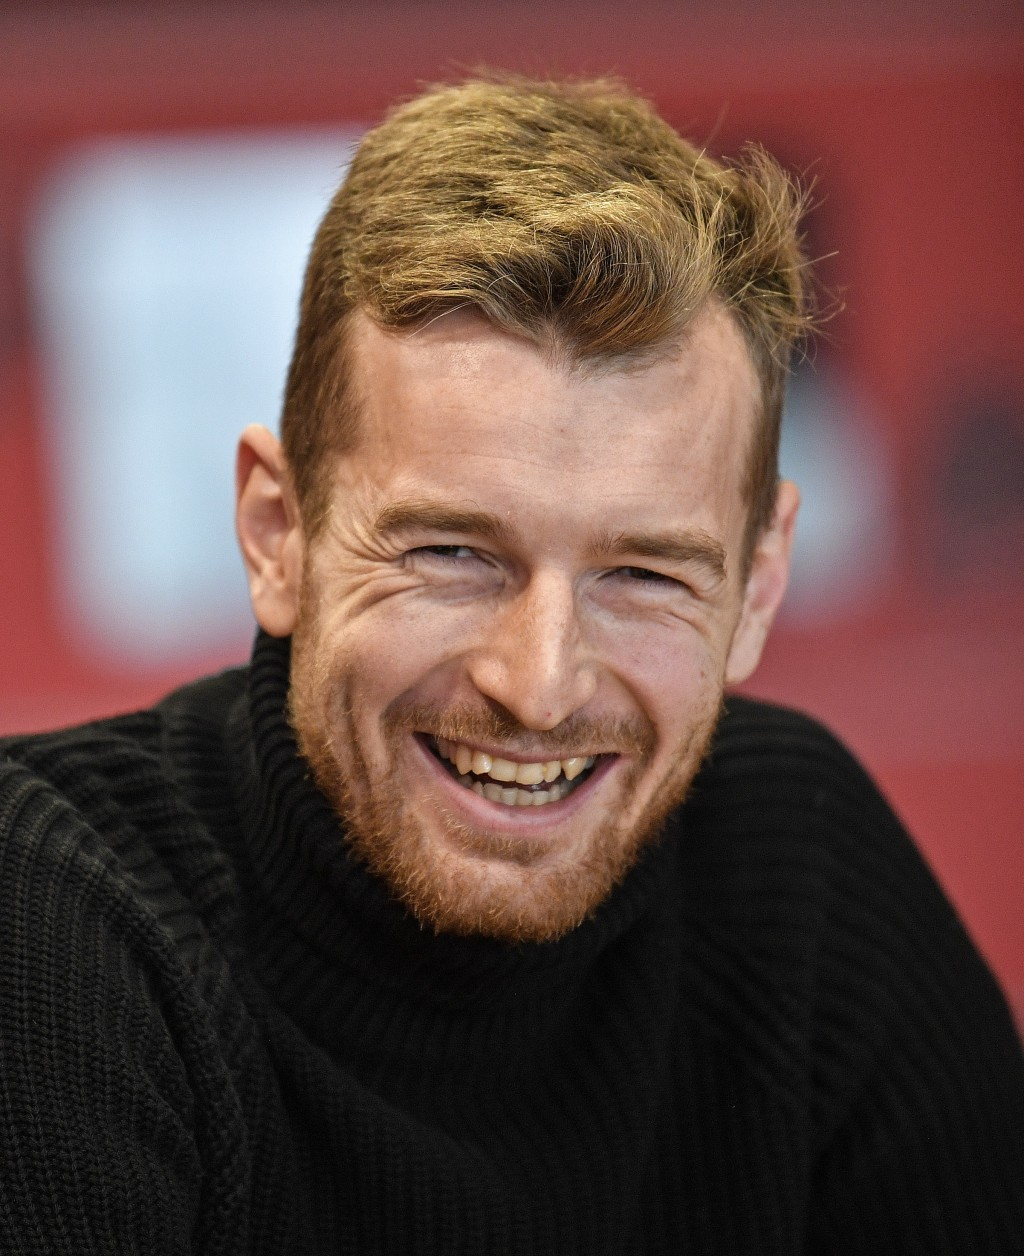 Leverkusen's goalkeeper Lukas Hradecky laughs during an interview with the Associated Press at the BayArena in Leverkusen, Germany, Monday, Dec. 2, 20...